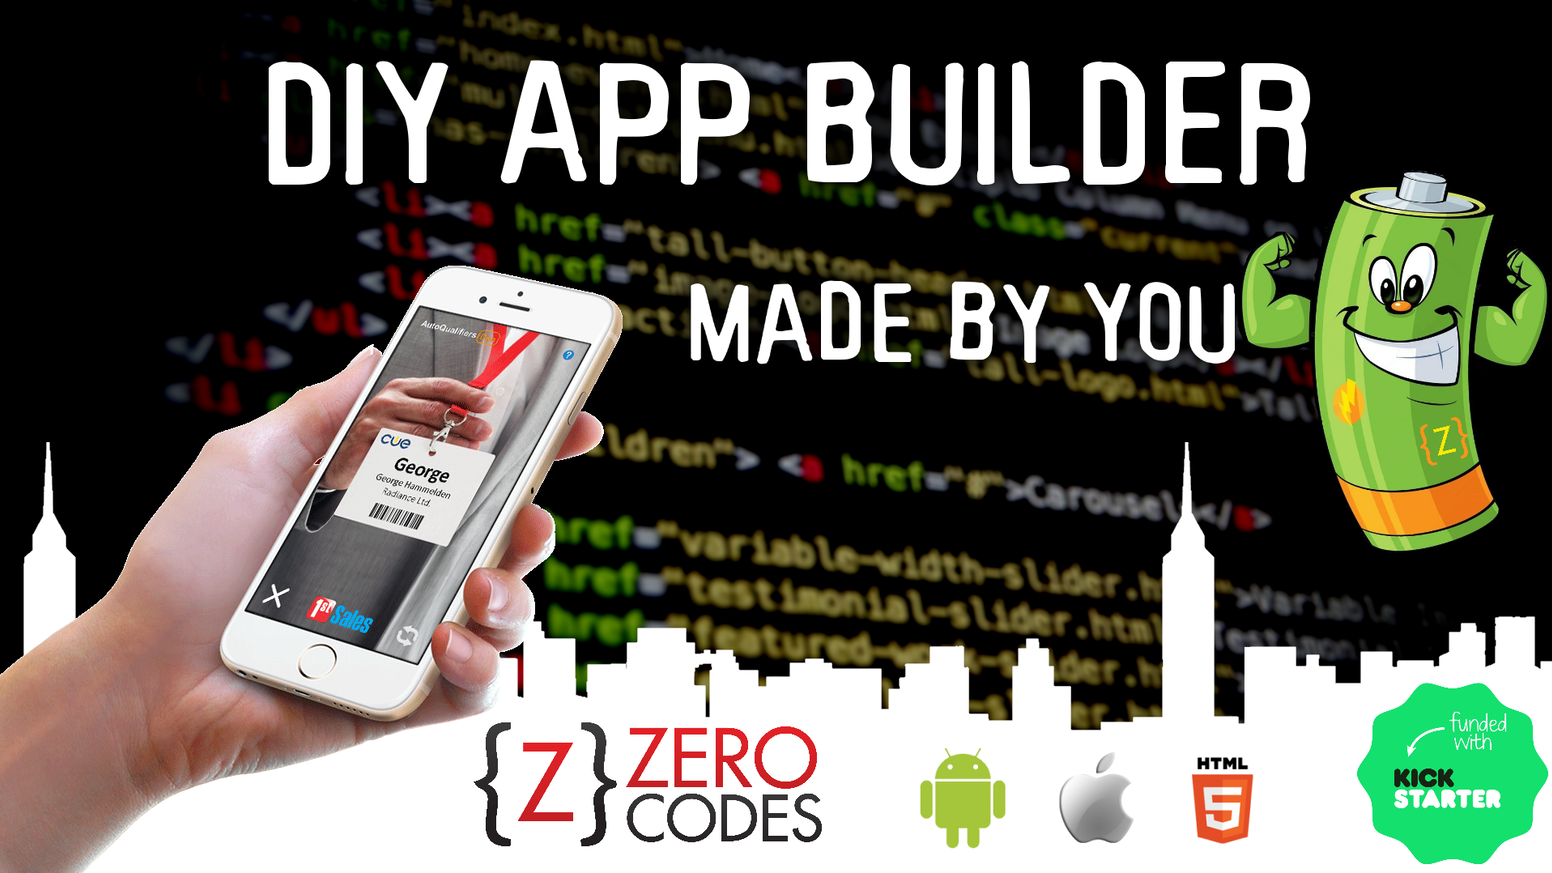 With our tool anyone is able to create incredible apps and now we are going to improve it even more! Join us and enjoy the new way!